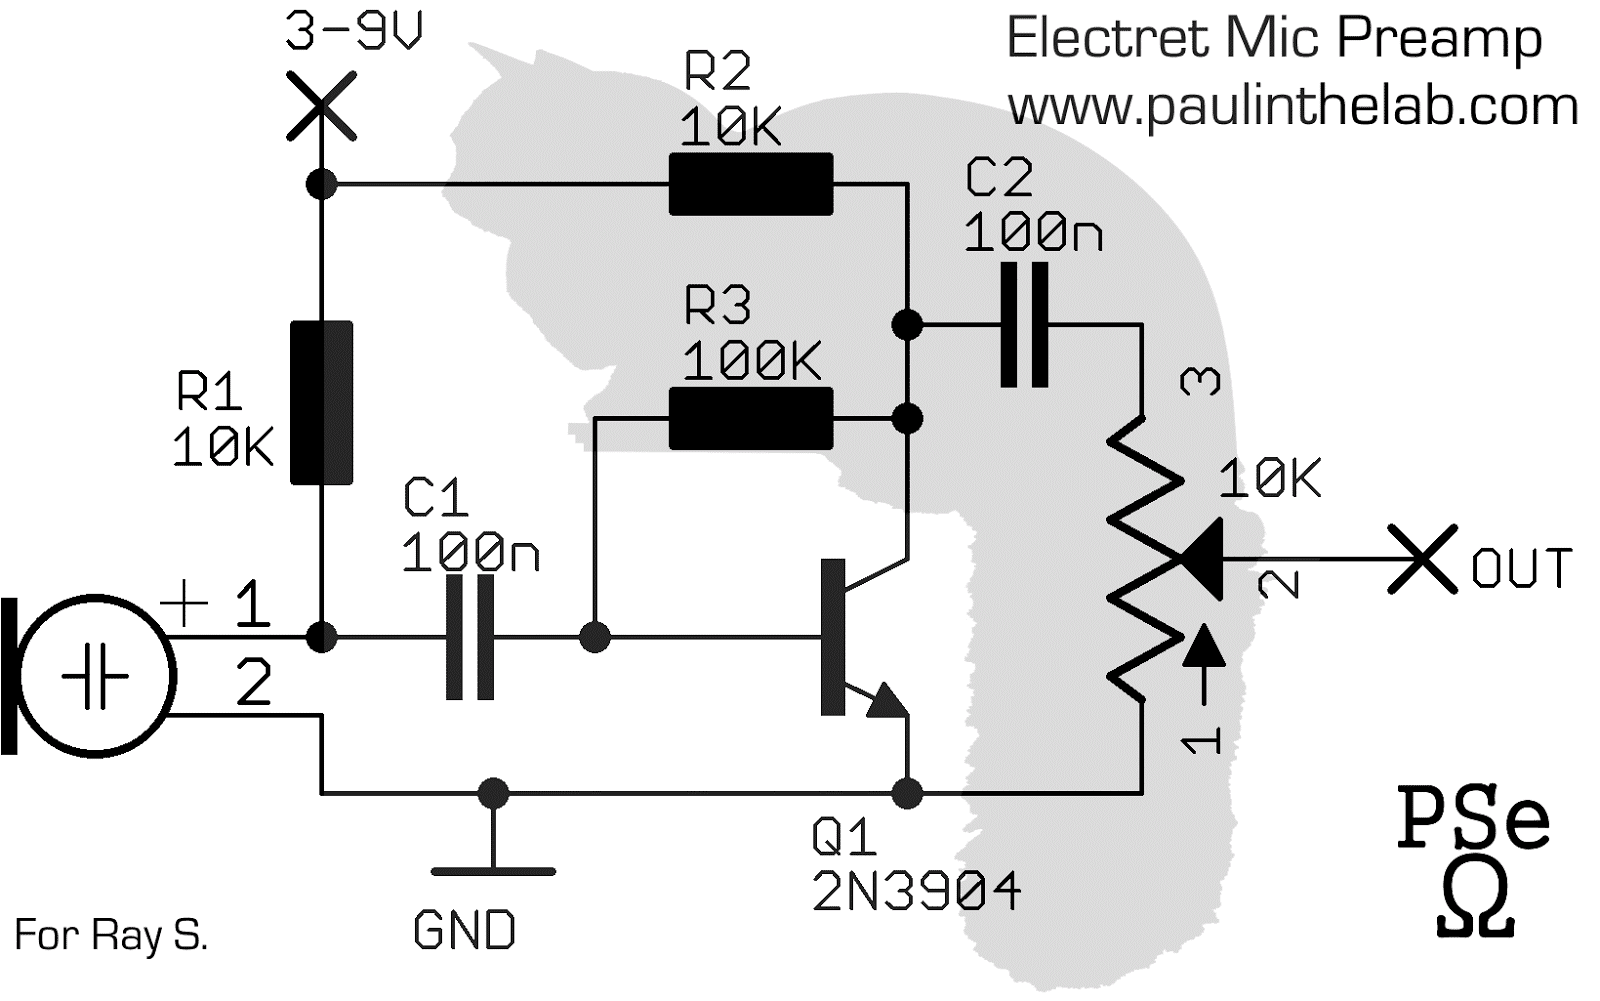 Electret Microphone Preamp Circuit Schematic Electrical Diagram Dynamic Mic Preamplifier Paul In The Lab Stripboard Layout Line Amp